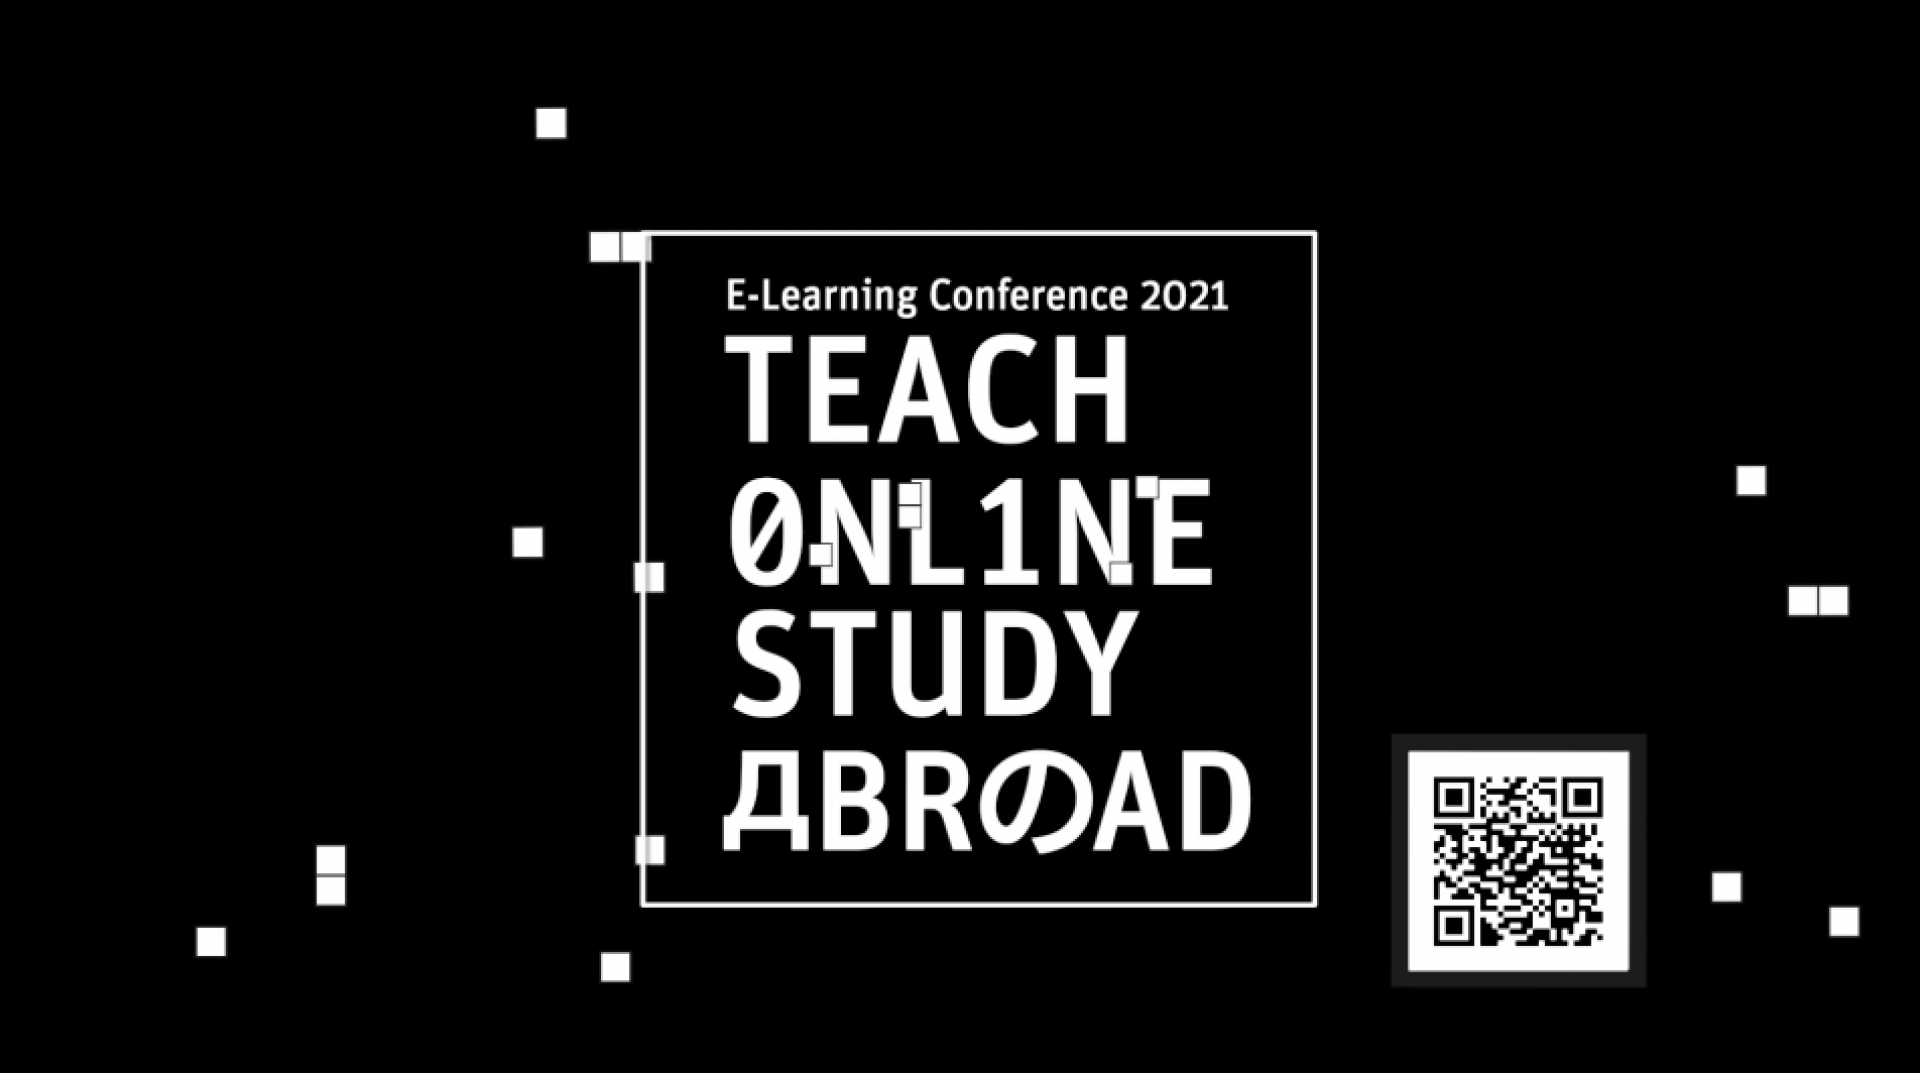 E-Learning Conference 2021